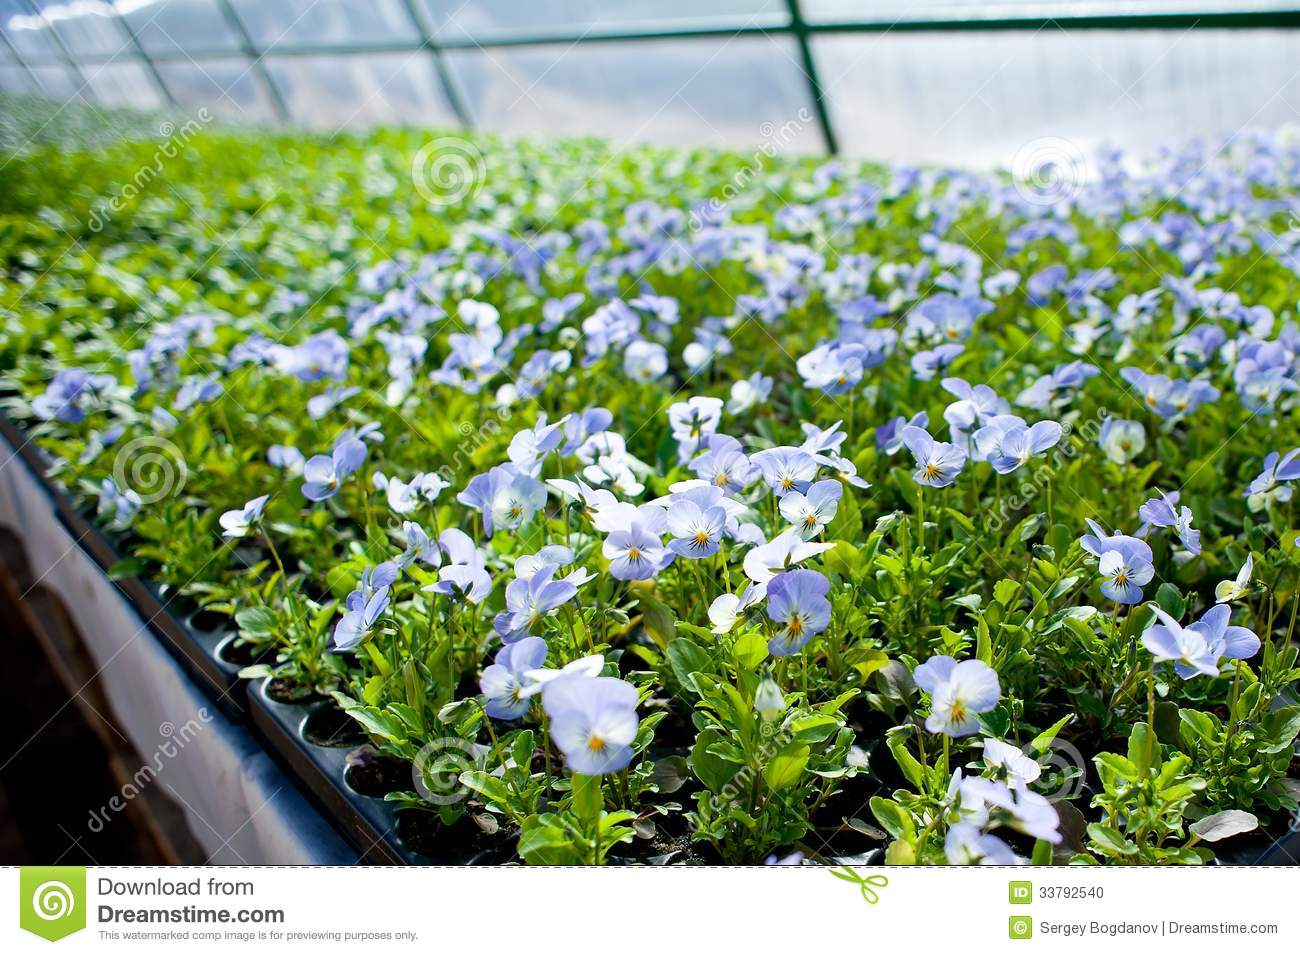 Plant green house garden flower nursery stock photo for Green plants for garden